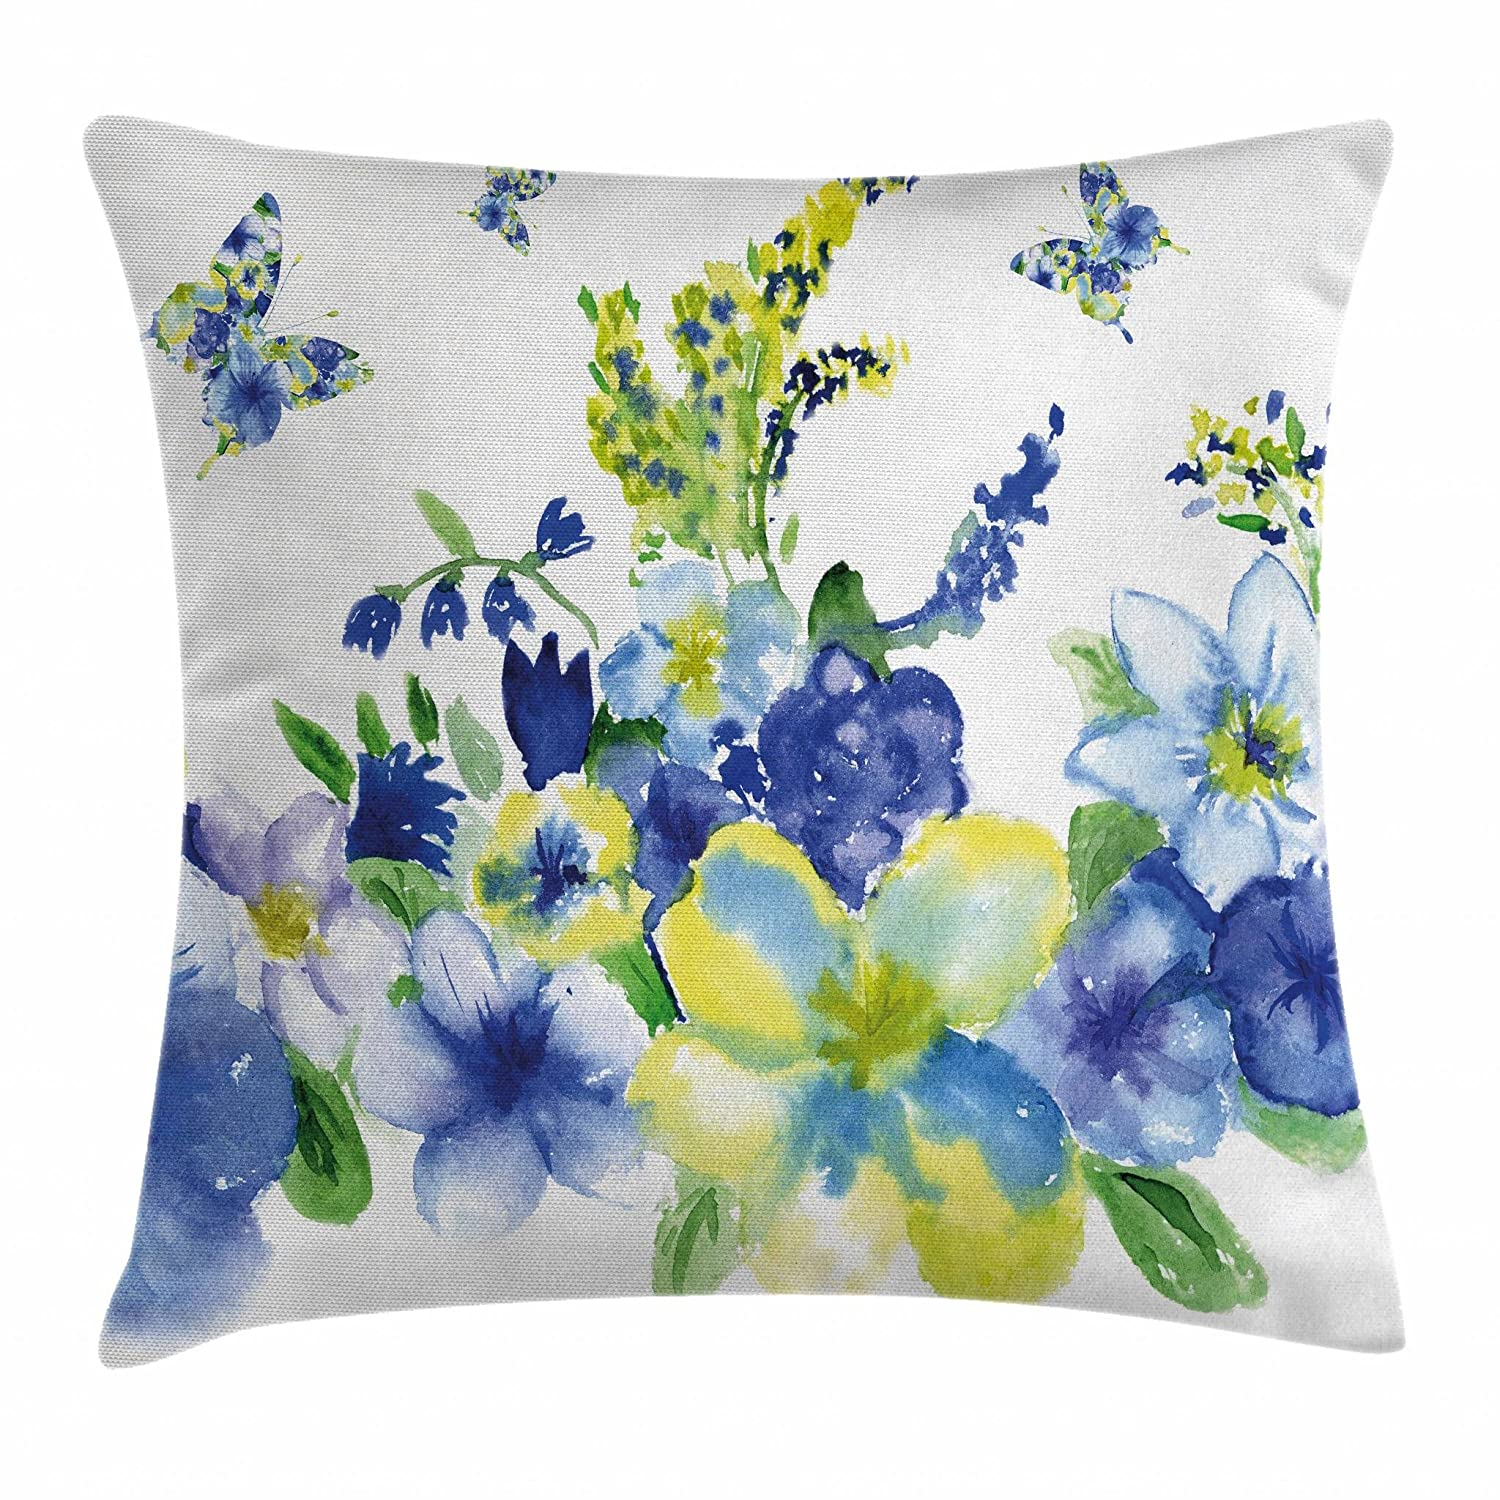 "Ambesonne Yellow and Blue Throw Pillow Cushion Cover, Spring Flower Watercolor Flourishing Vibrant Blooms Design, Decorative Square Accent Pillow Case, 16"" X 16"", Royal Blue"